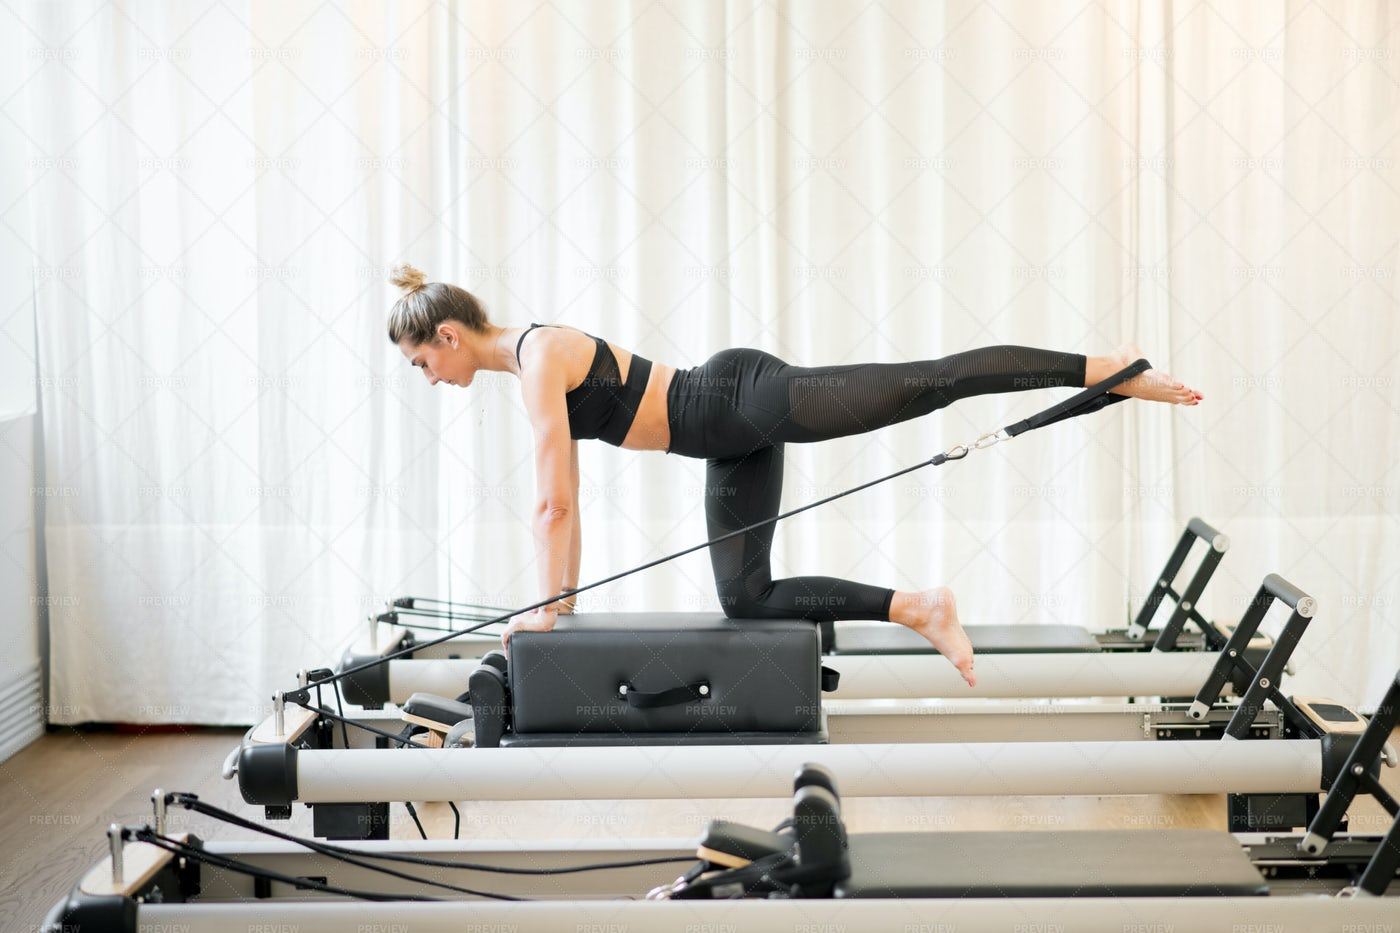 Woman Performing Pilates With A Machine: Stock Photos